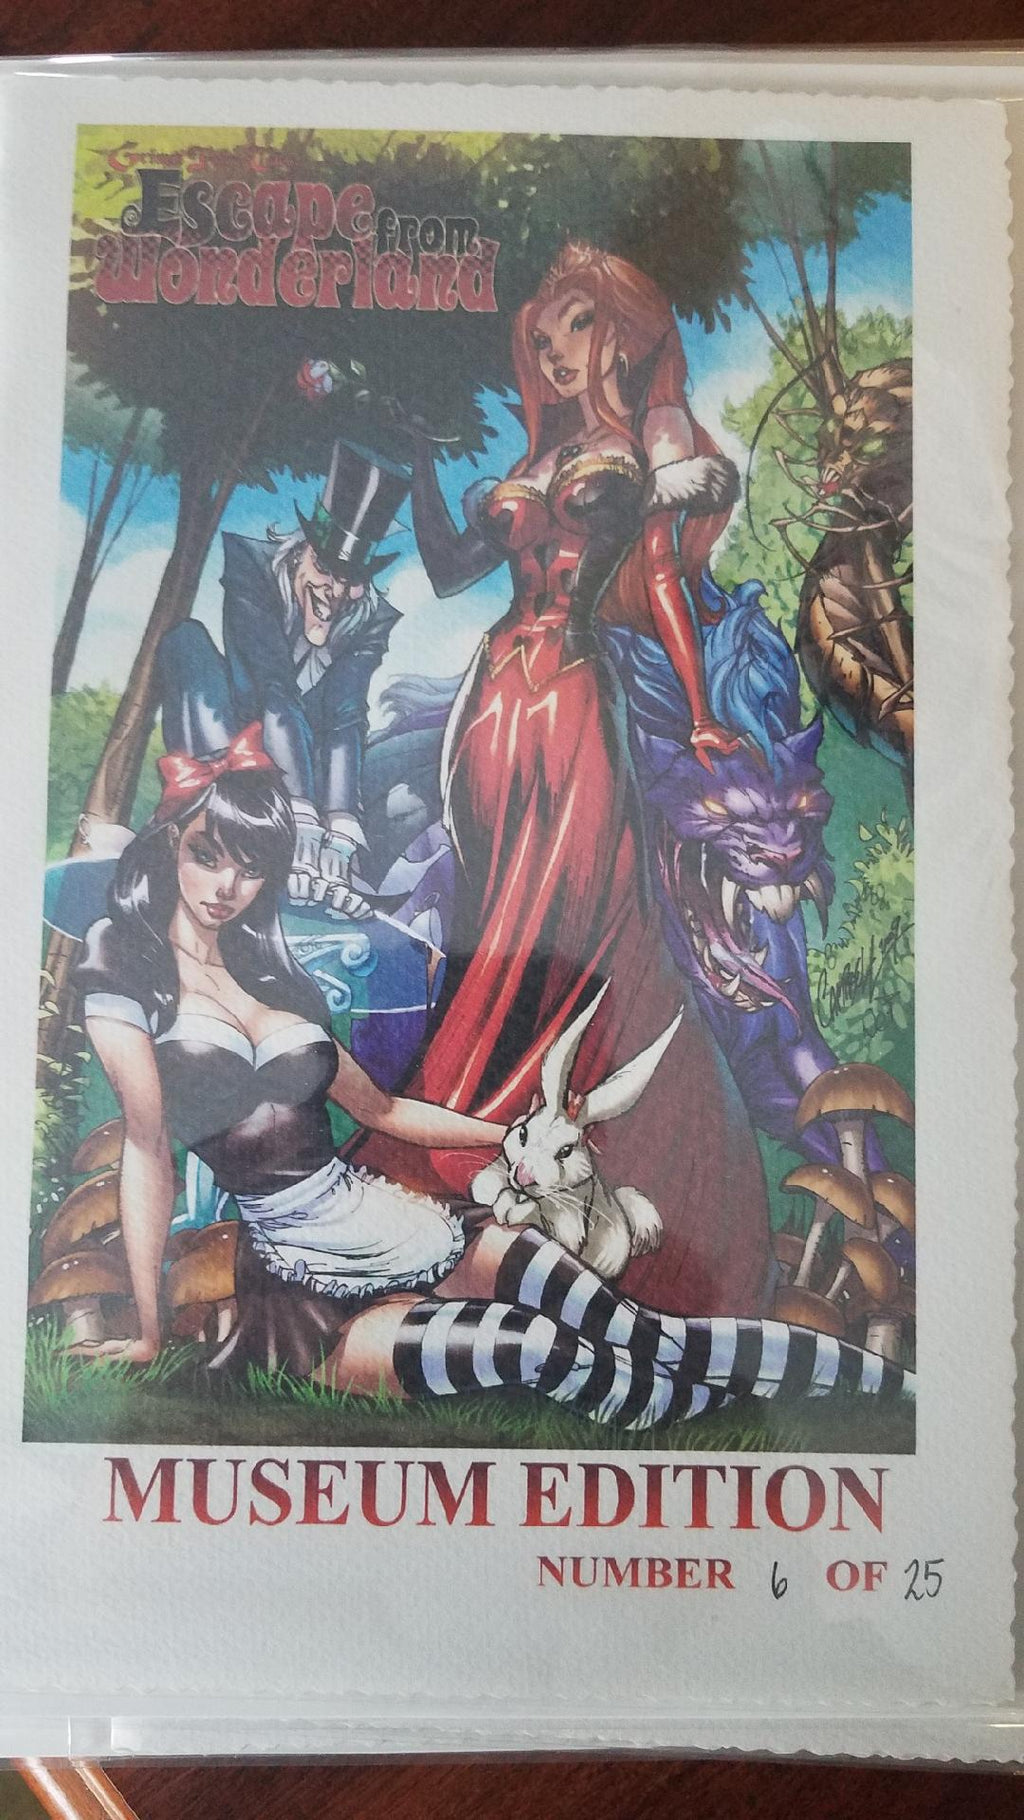 ESCAPE FROM WONDERLAND RARE MUSEUM EDITION J SCOTT CAMPBELL NM